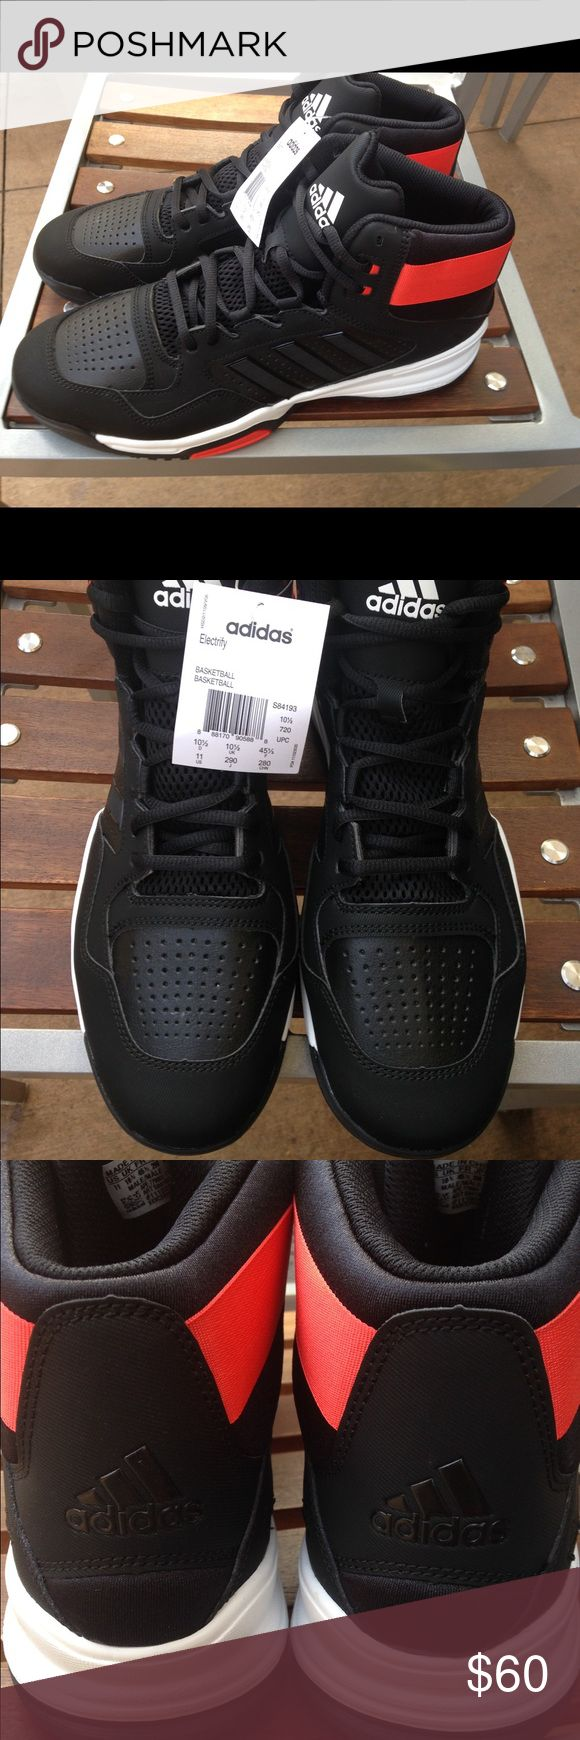 New Adidas Electrify Basketball Shoes Mens Size 11 New Adidas Electrify High Top Basketball Shoes Men's Size 11 Adidas Shoes Sneakers